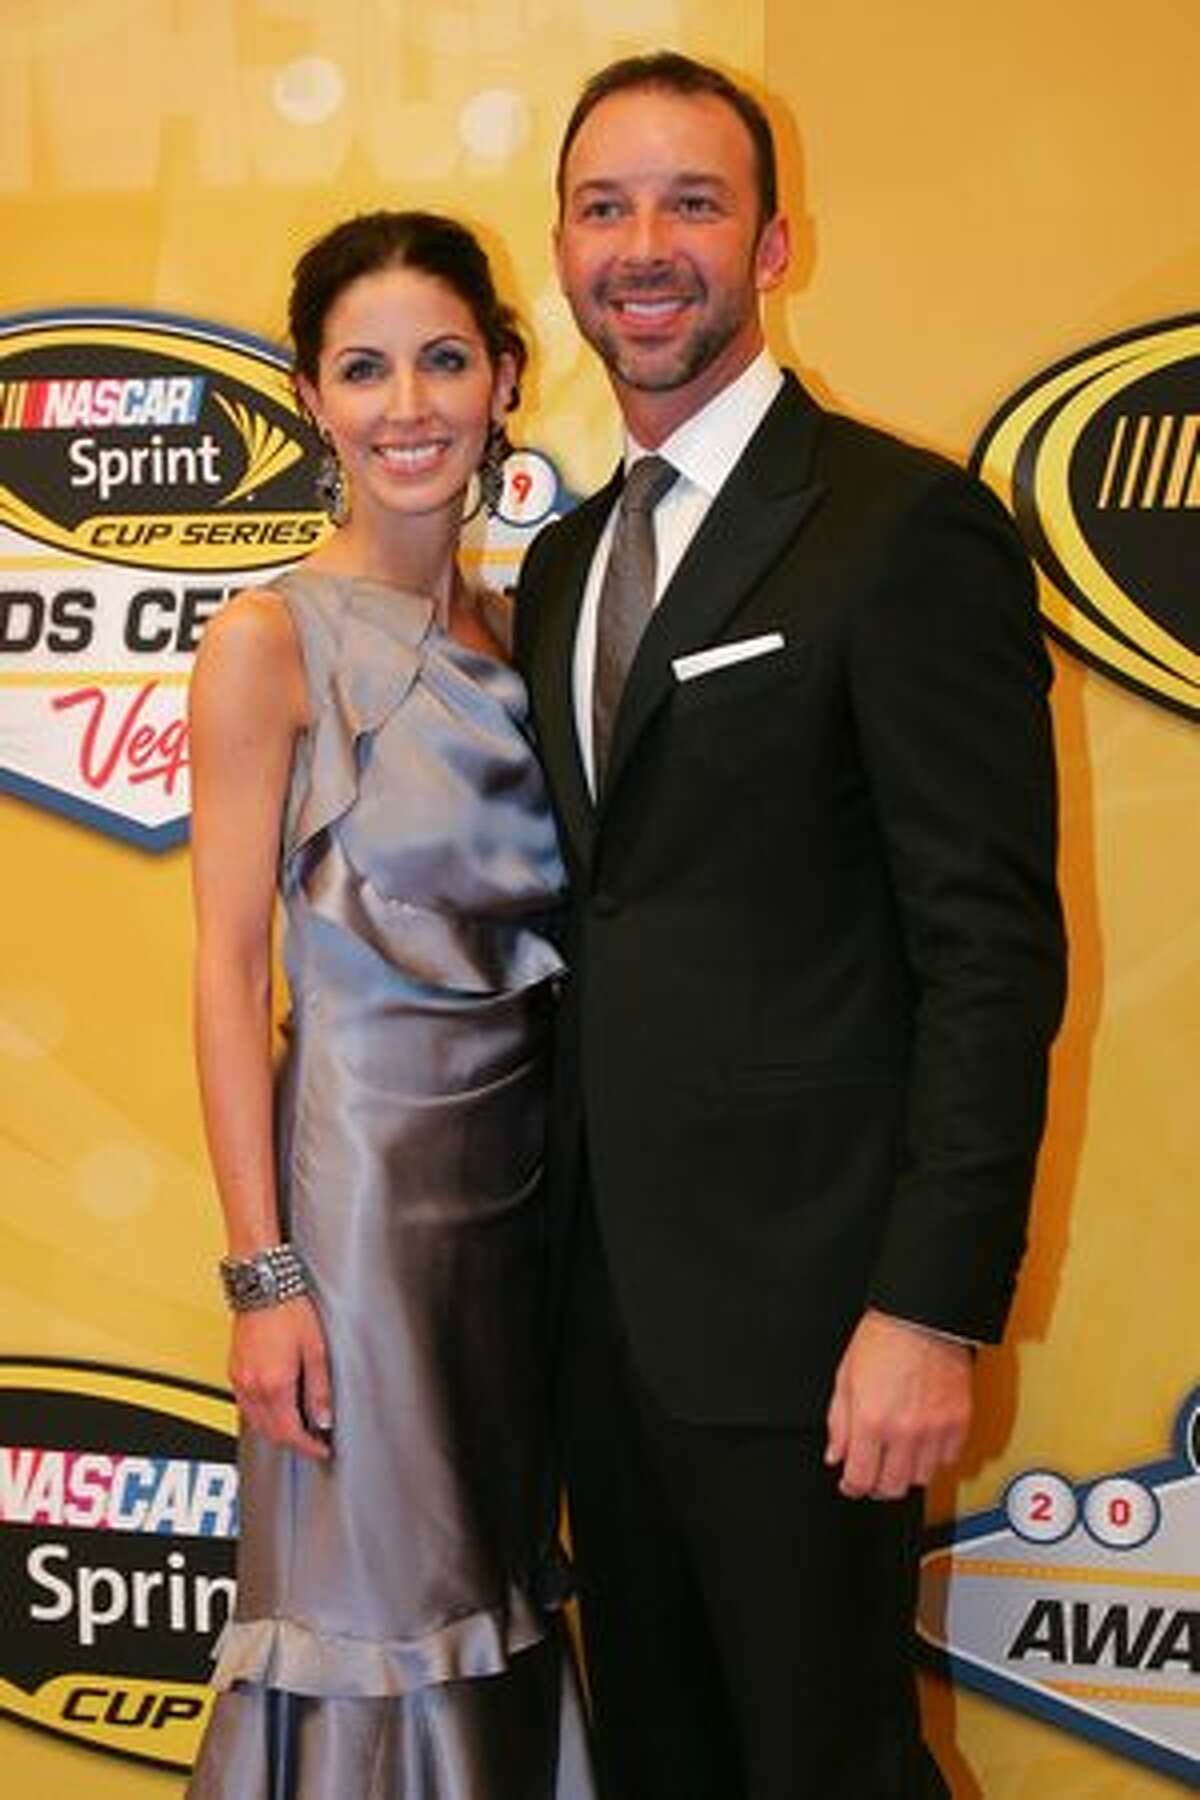 LAS VEGAS - DECEMBER 04: Crew chief Chad Knaus (R) and Lisa Rockelmann pose pose on the red carpet for the NASCAR Sprint Cup Series awards banquet during the final day of the NASCAR Sprint Cup Series Champions Week on December 4, 2009 in Las Vegas, Nevada.